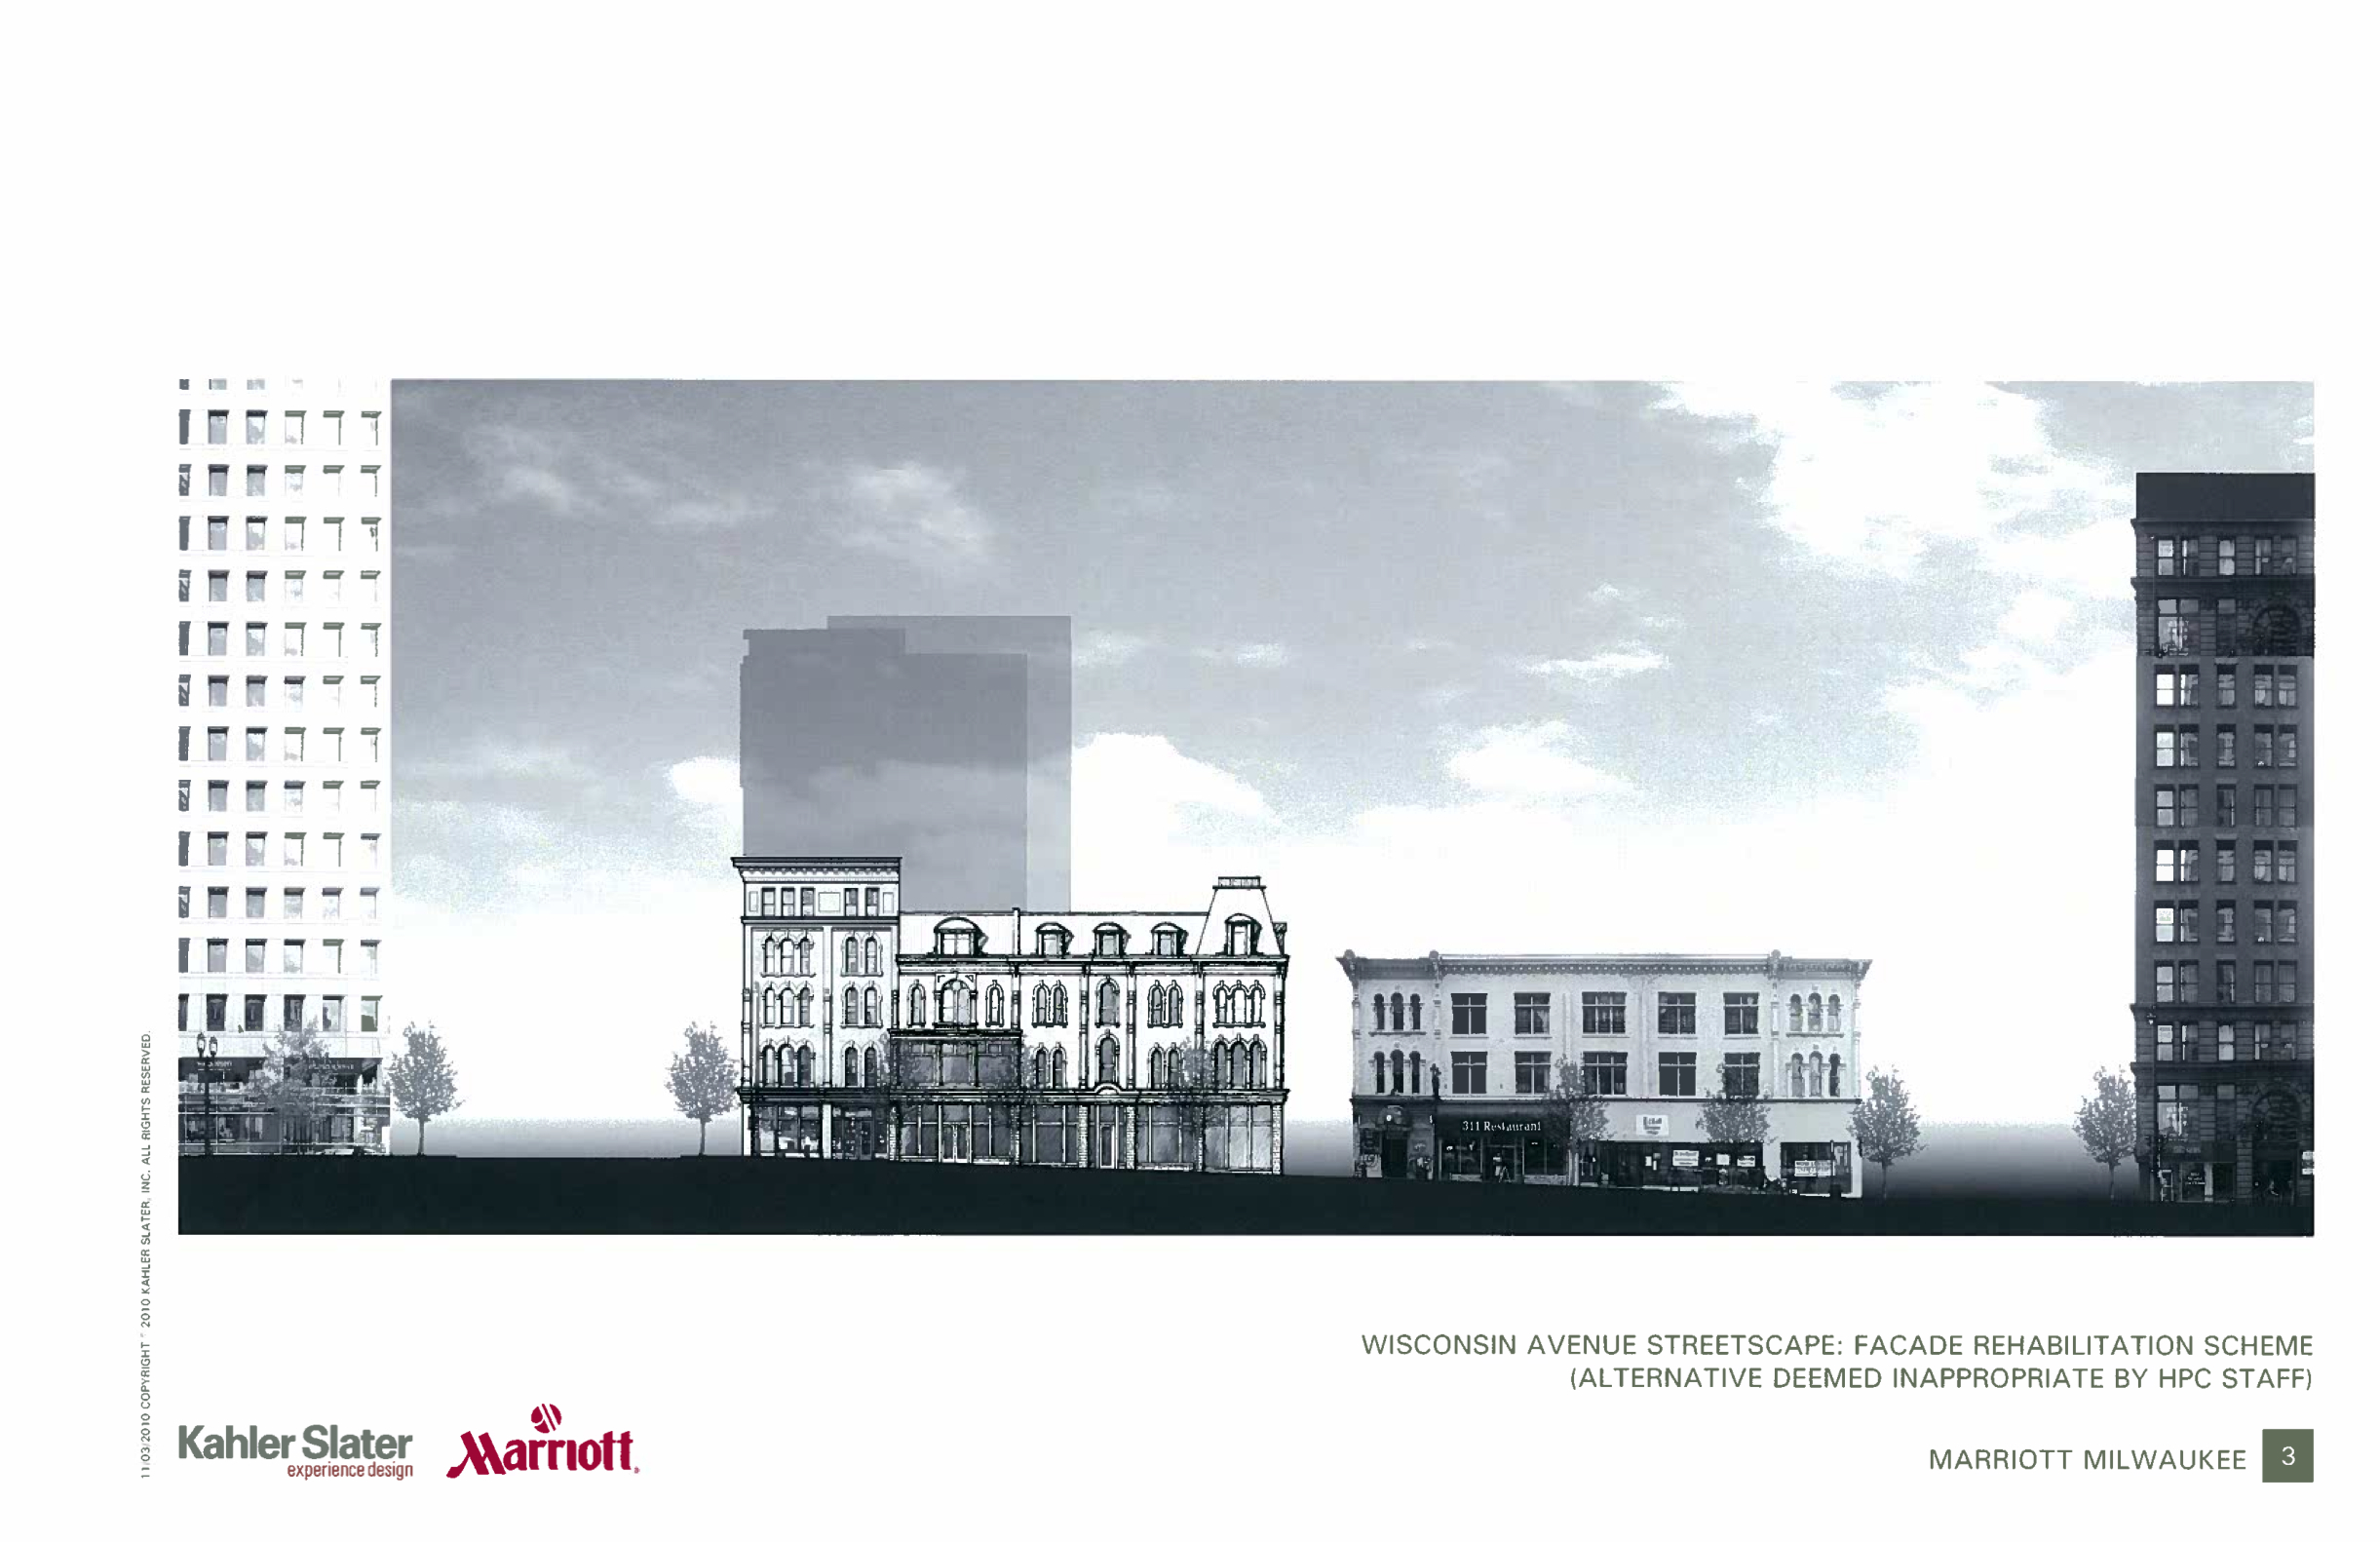 Marriott Hotel Project Wins Appeal on 3-2 Vote at Zoning Committee